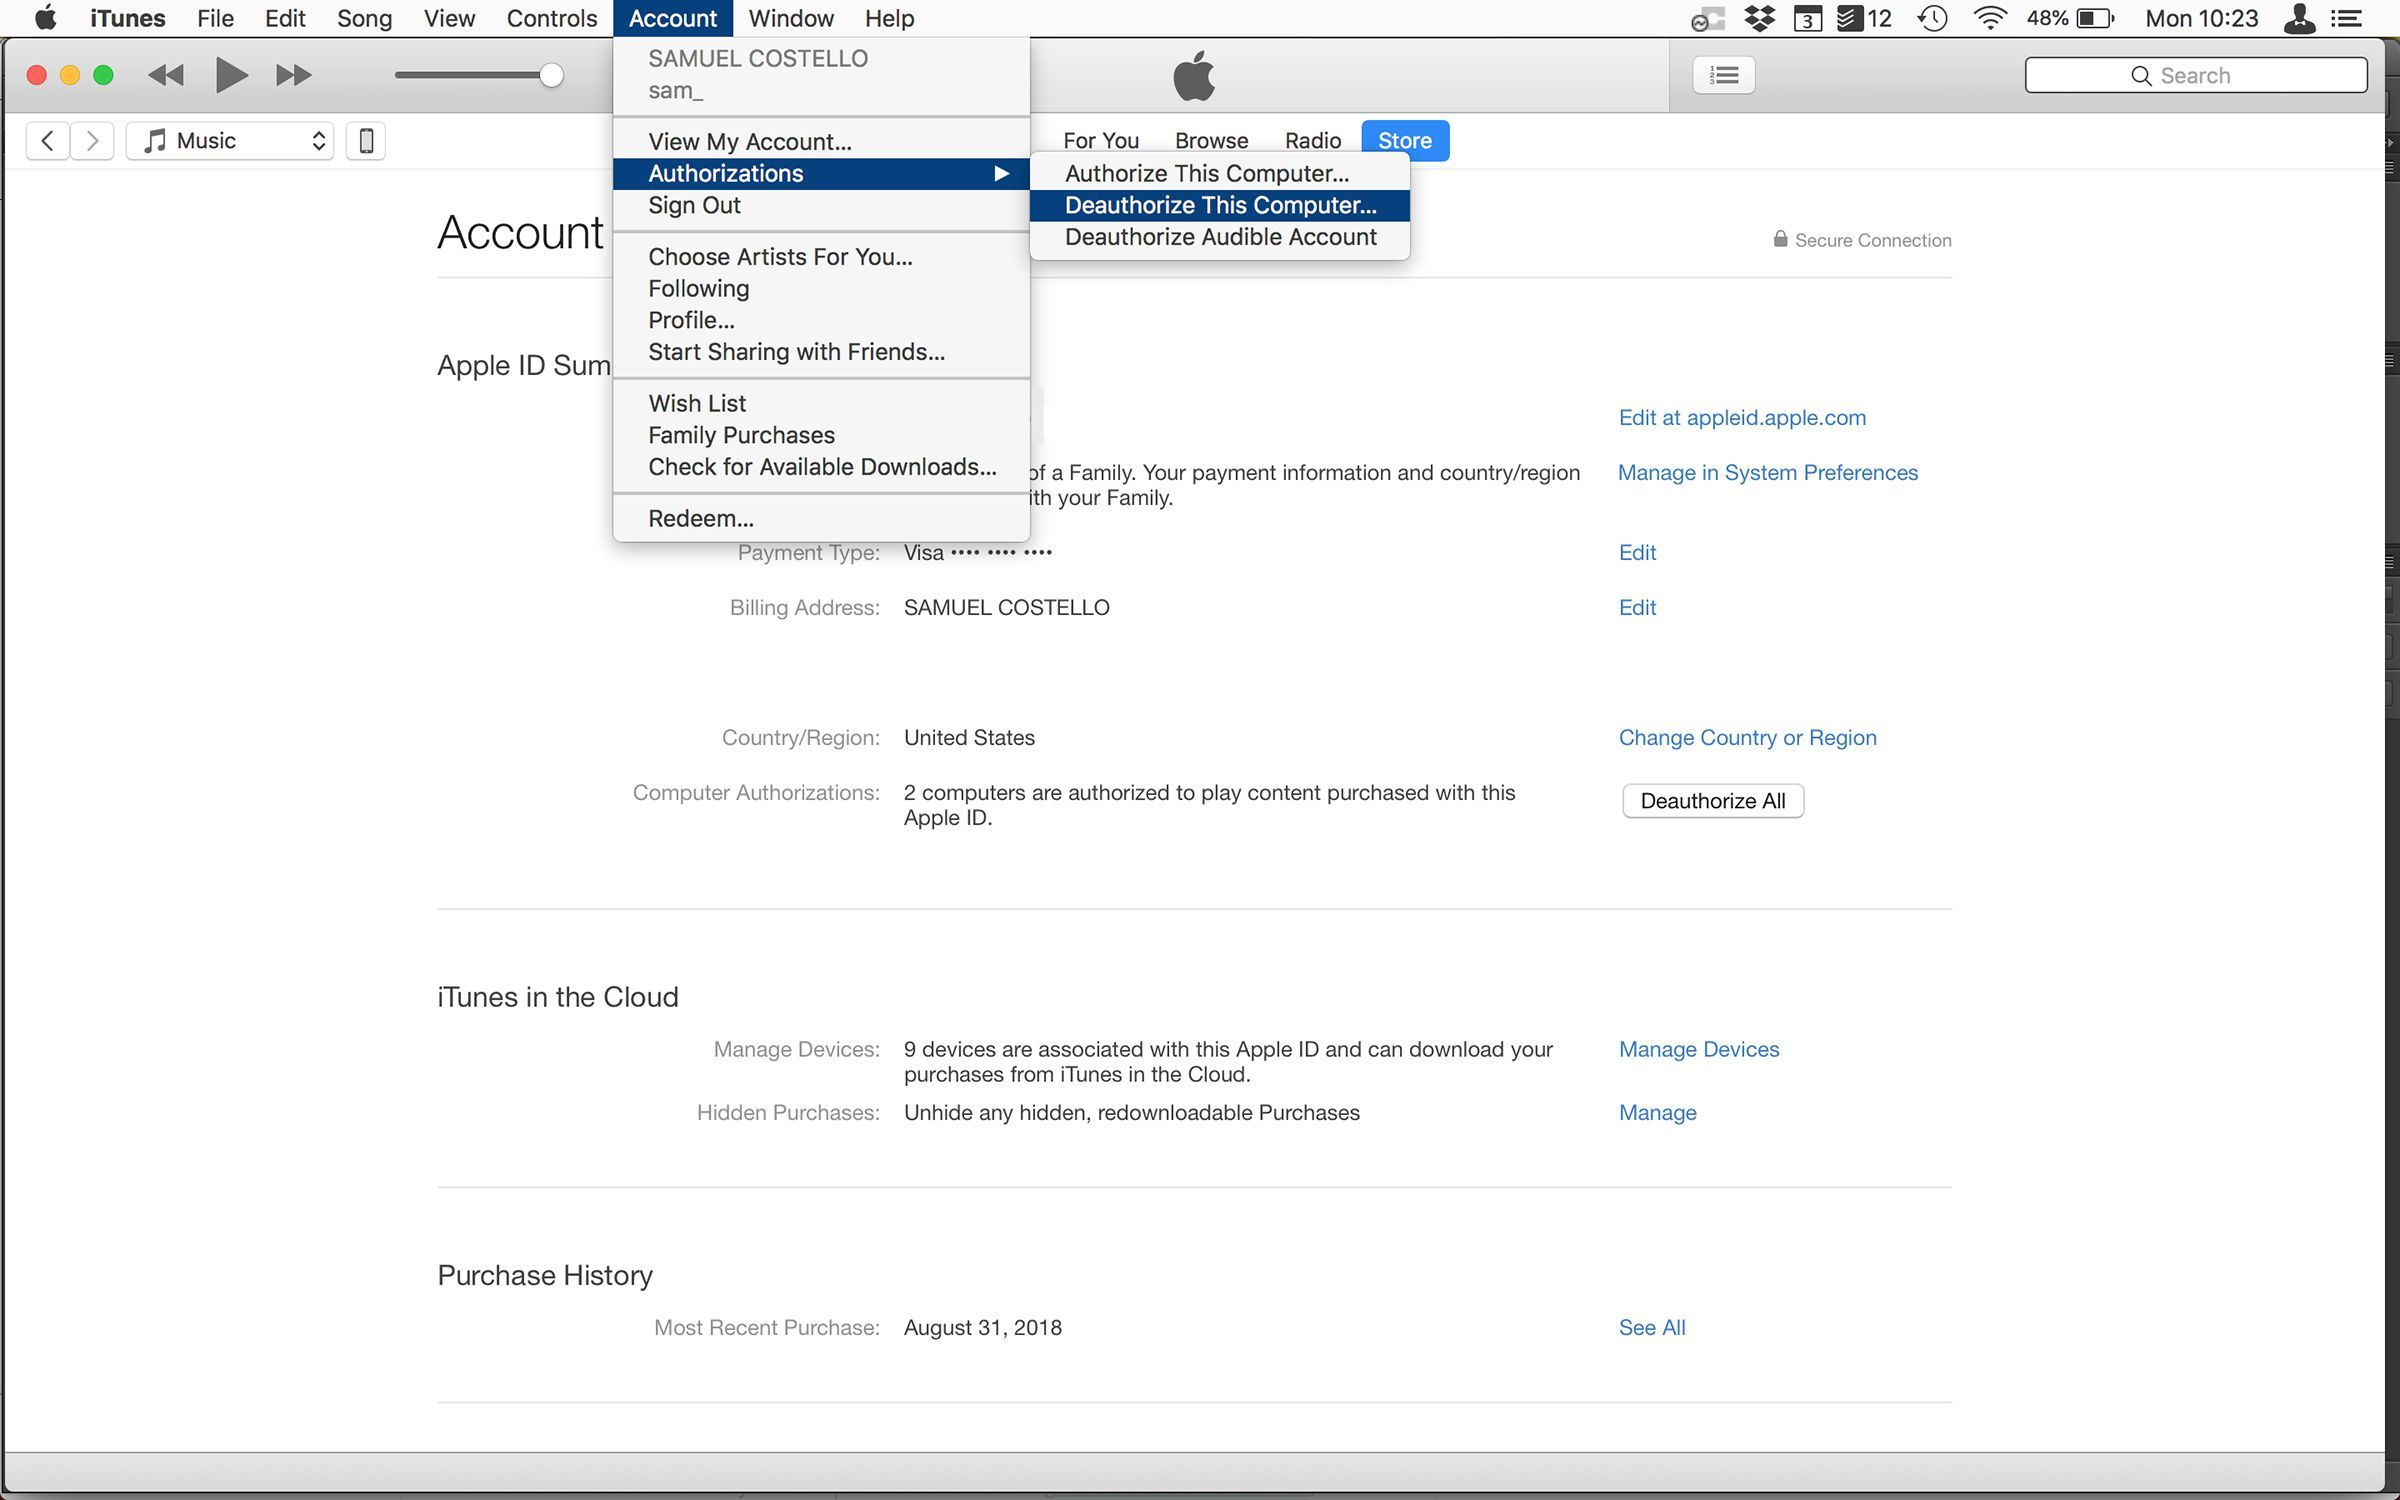 How to Deauthorize iTunes on Old or Dead Computers